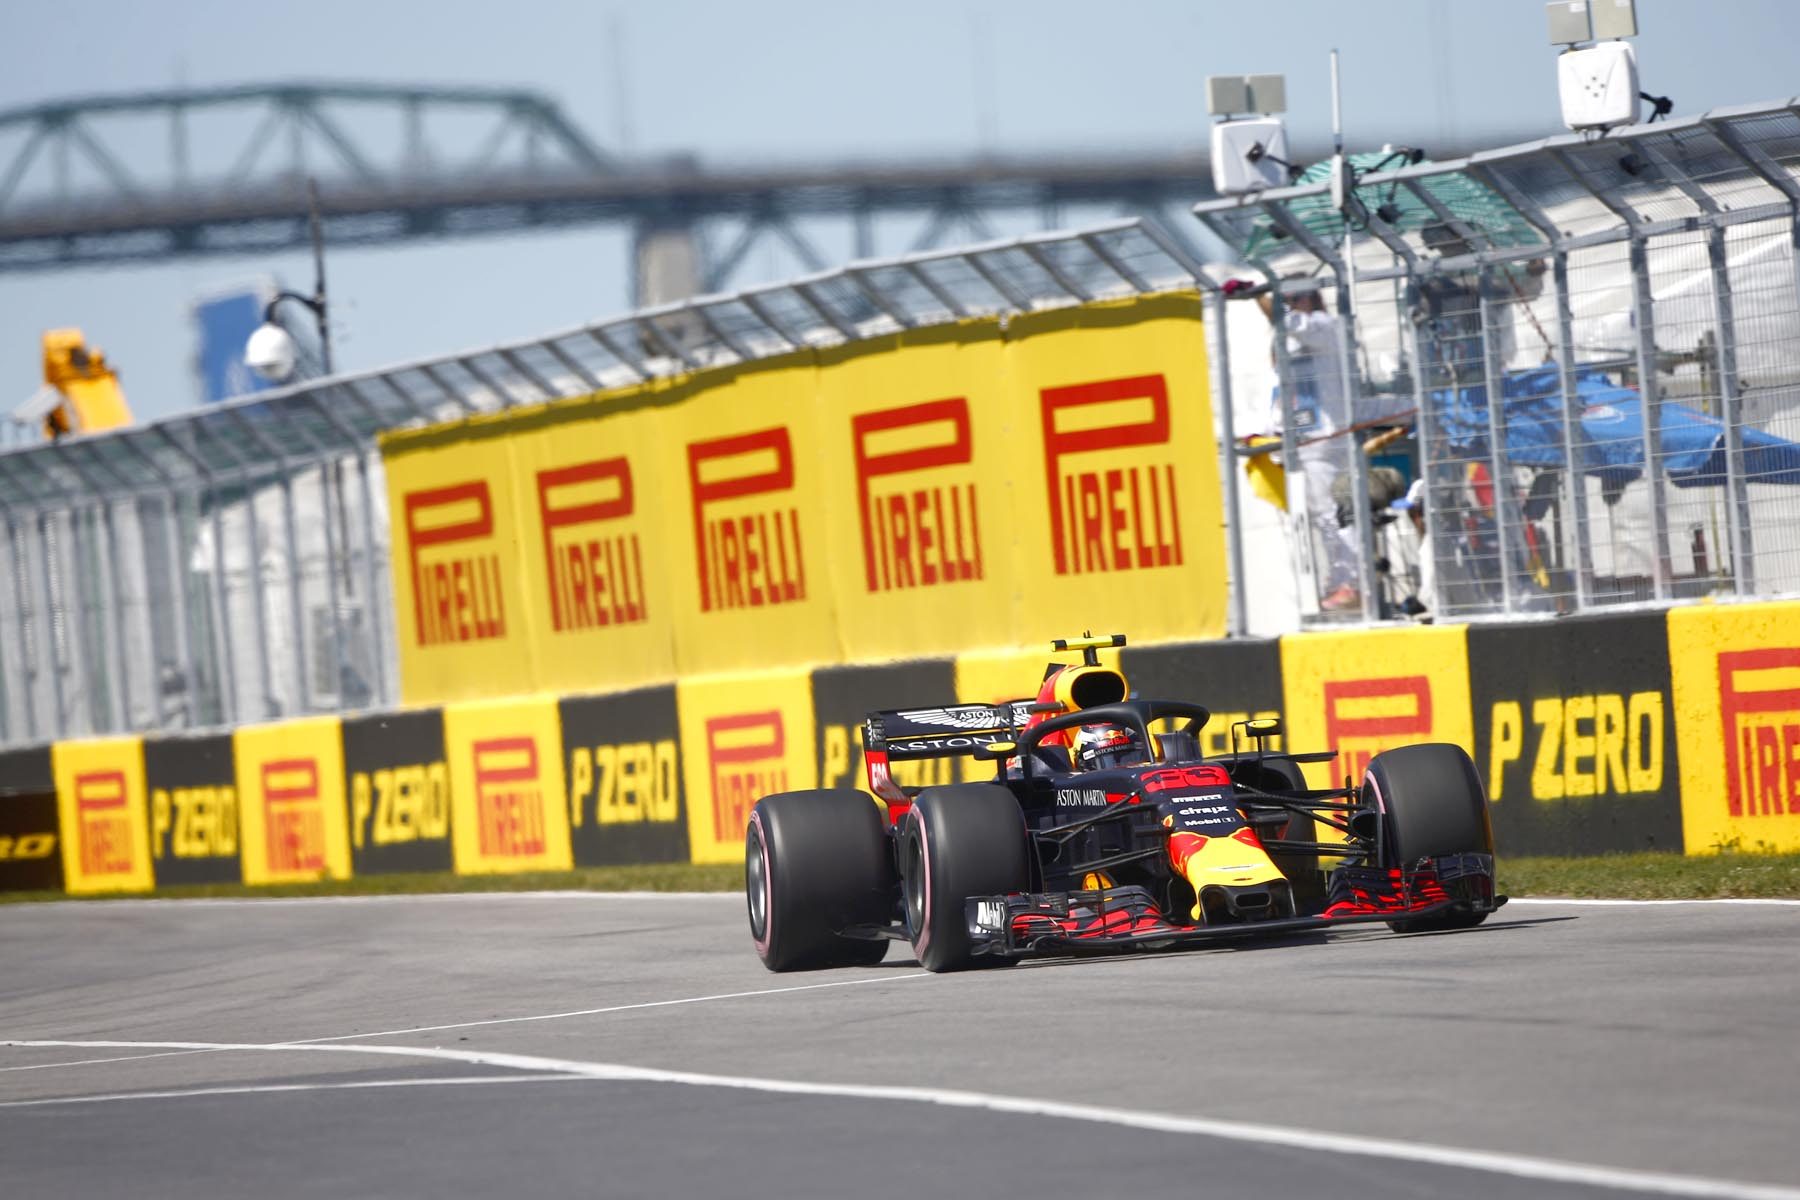 Max Verstappen on track at the 2018 Canadian Grand Prix.